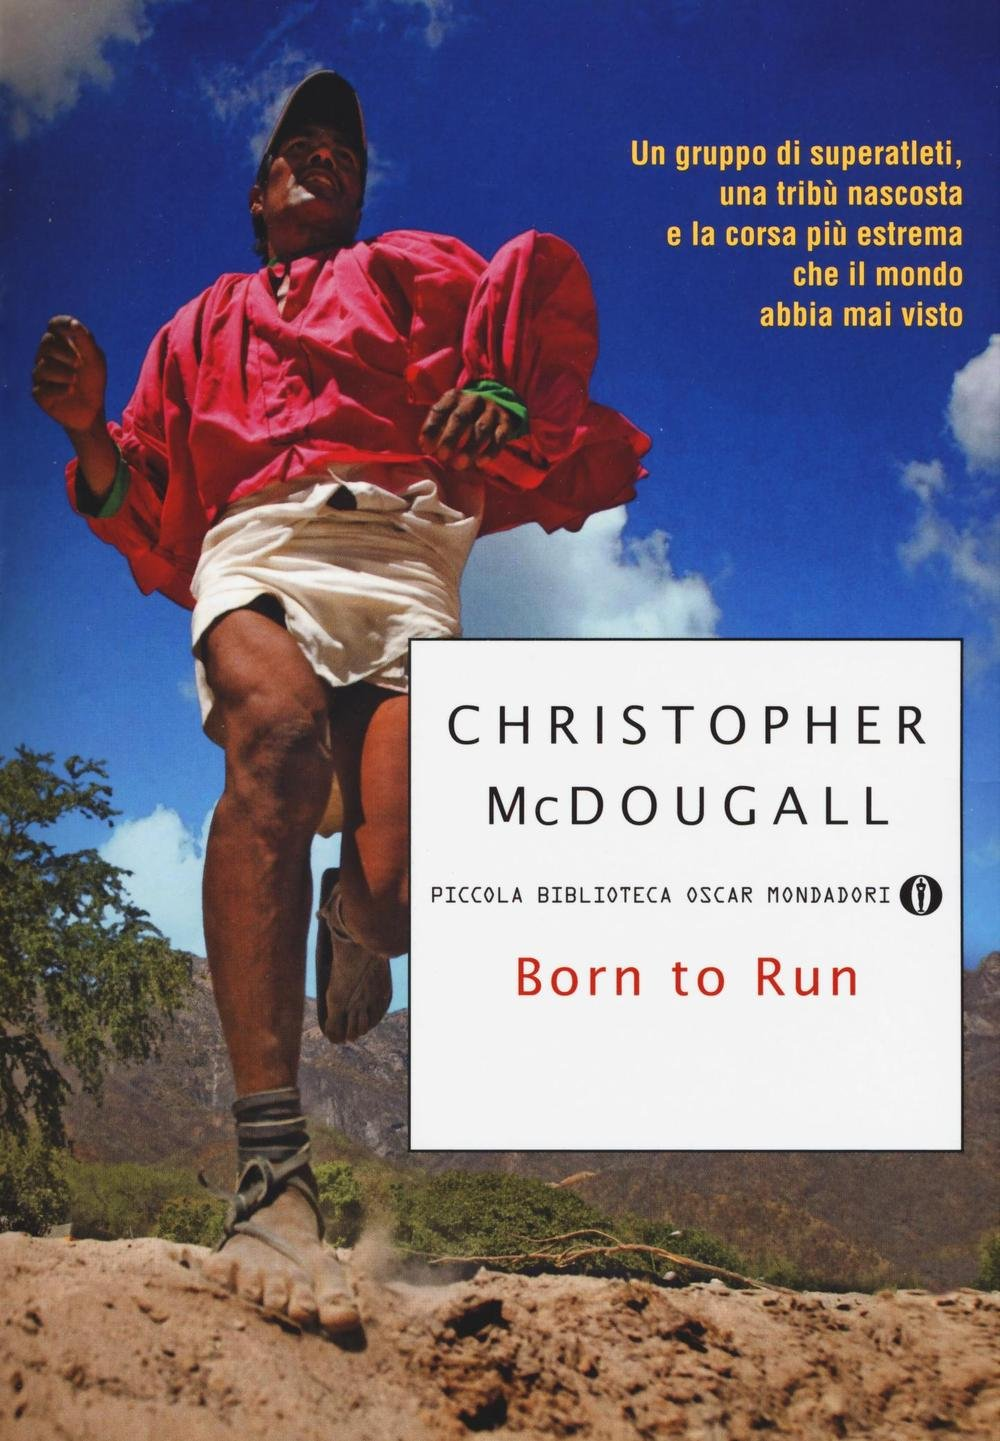 born-to-run-christopher-mcdougall.jpg